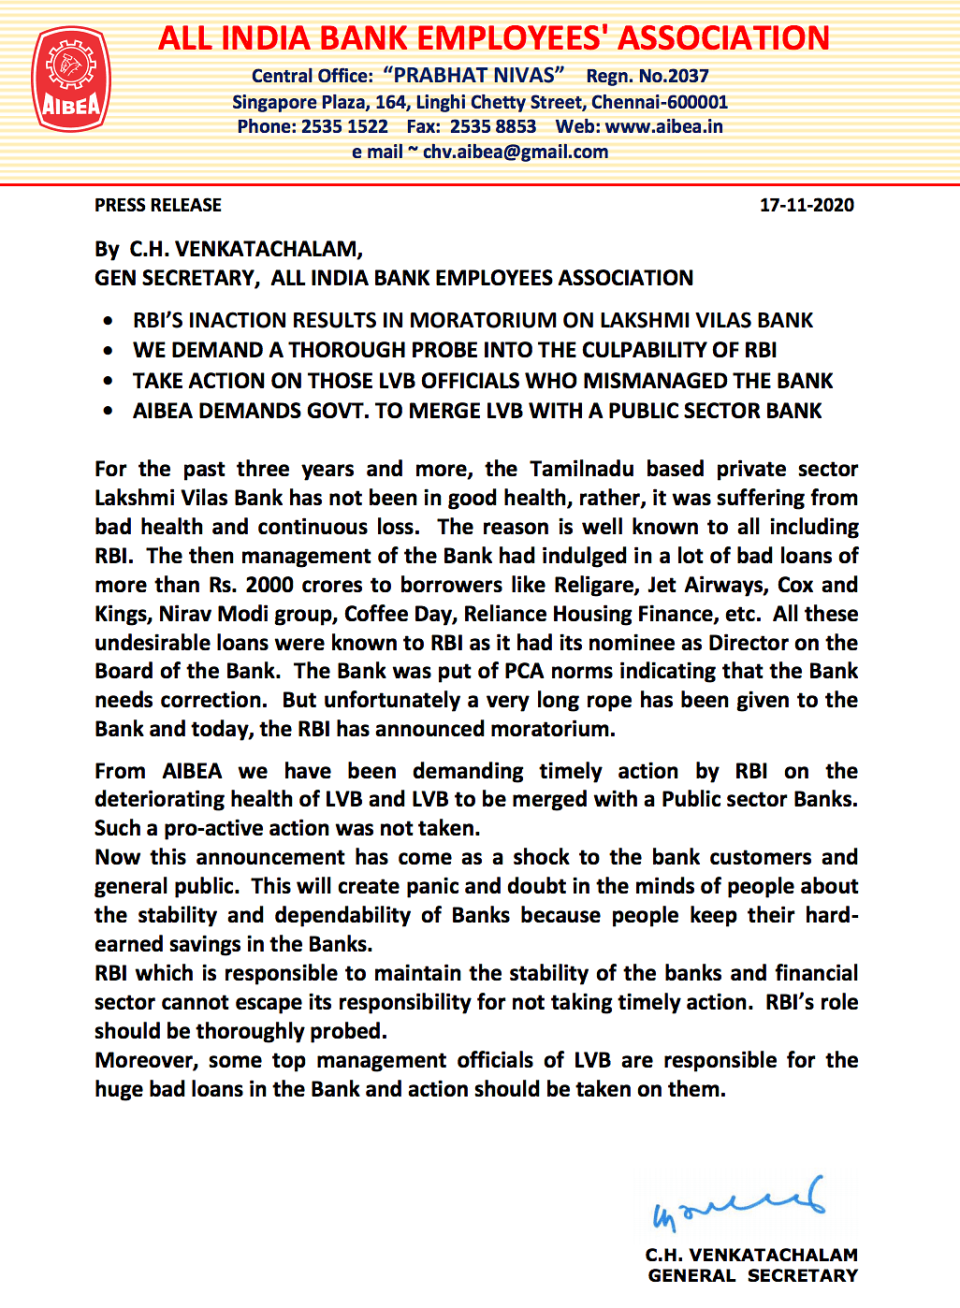 AIBEA has demanded a thorough probe into the culpability of the RBI.